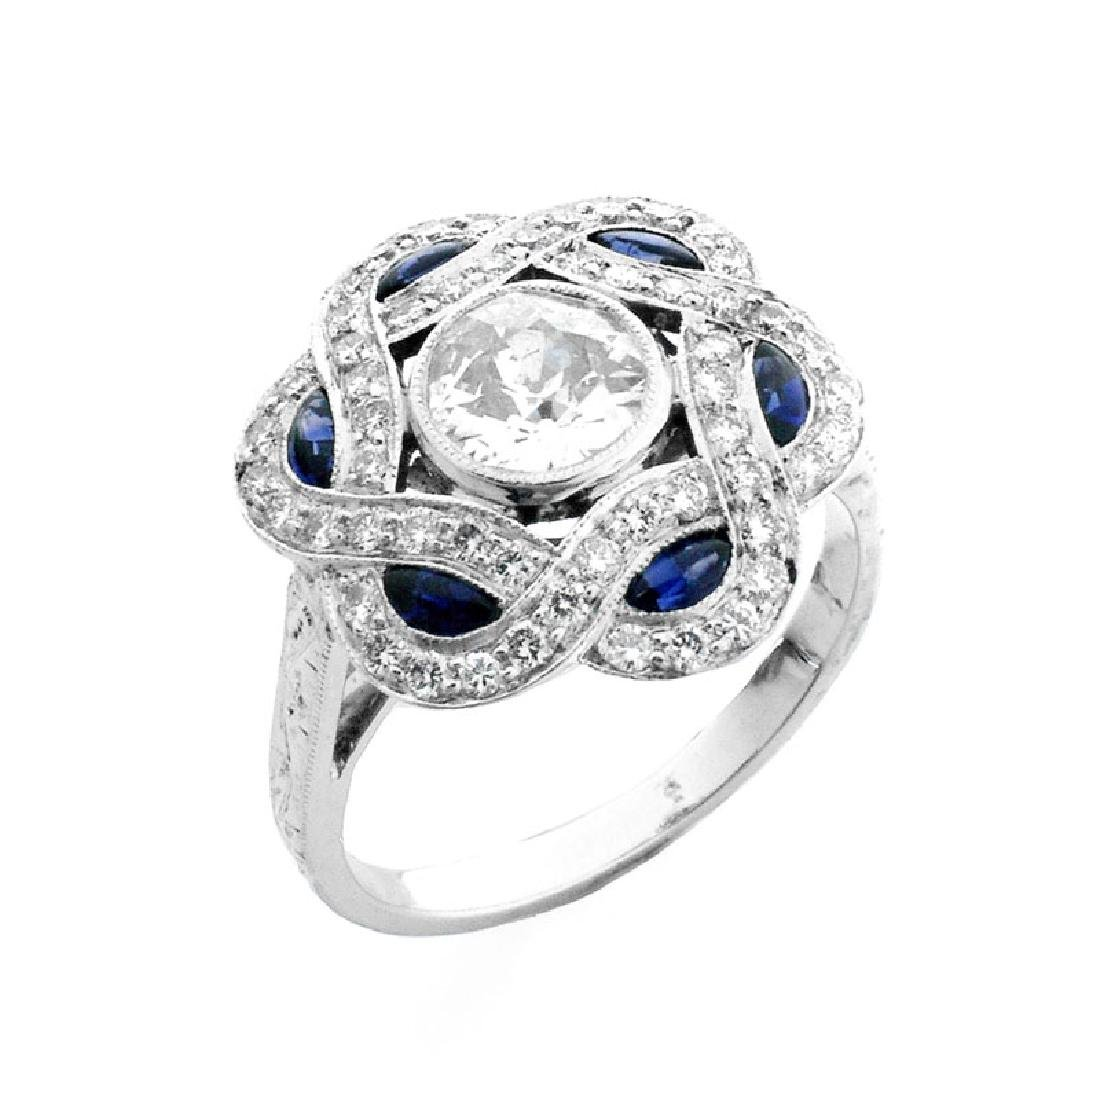 Art Deco style Diamond, Sapphire and Platinum Ring set